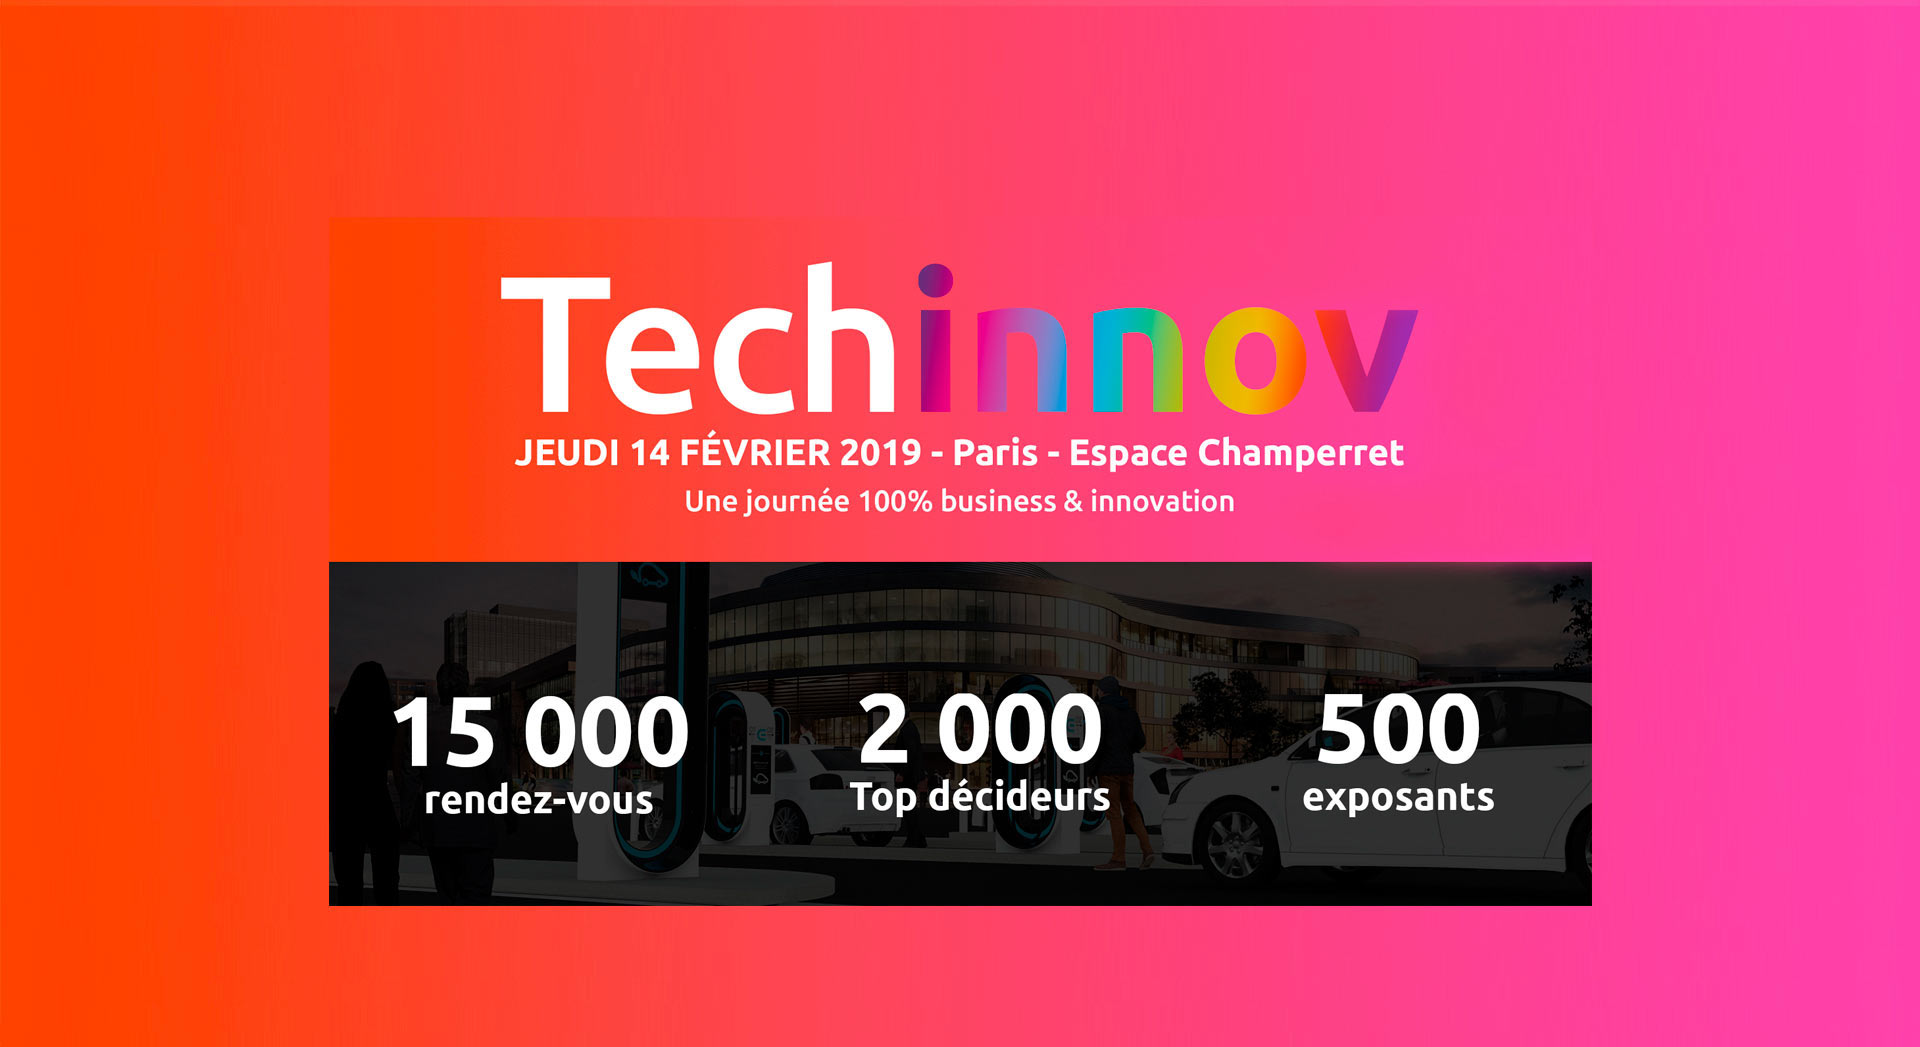 Techinnov, une journée 100% business & innovation